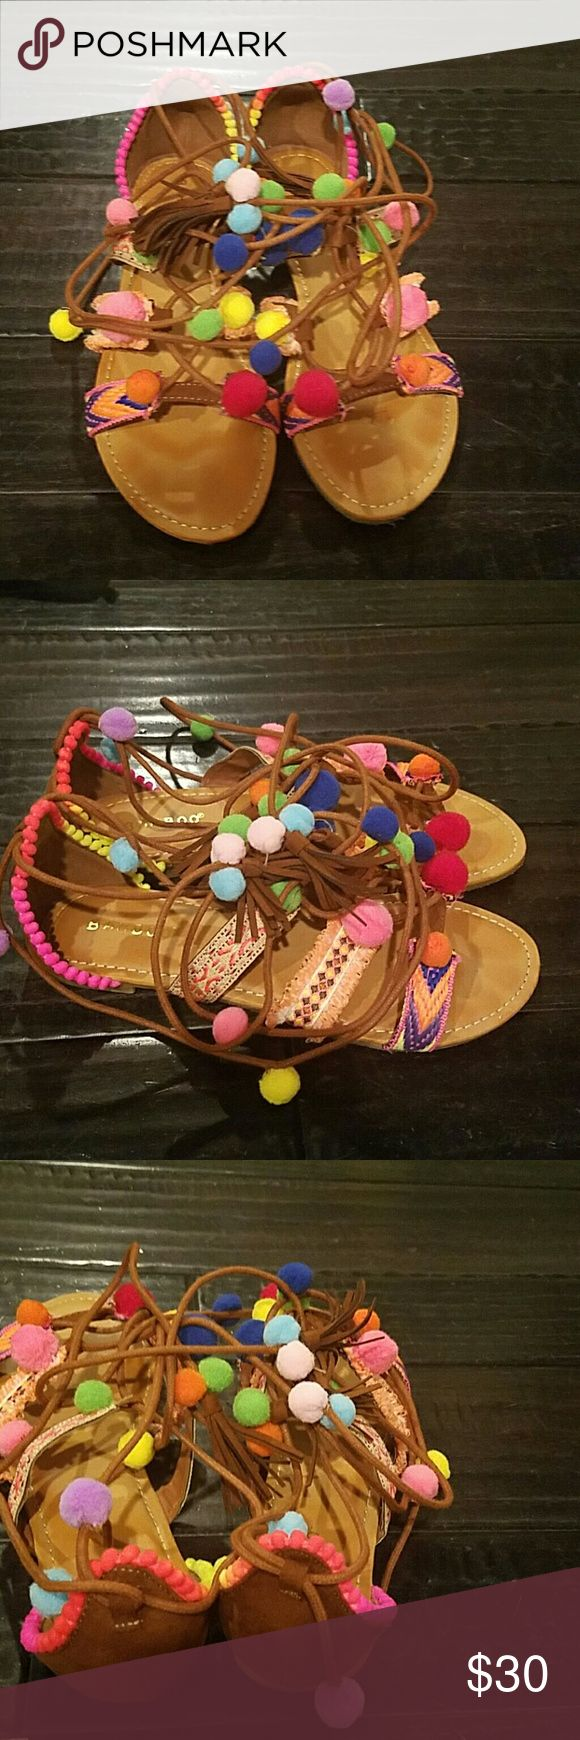 Pom pom gladiator shoes like new worn once 7 Used once fabric pom pom gladiator sandals perfect for summer bamboo  Shoes Sandals